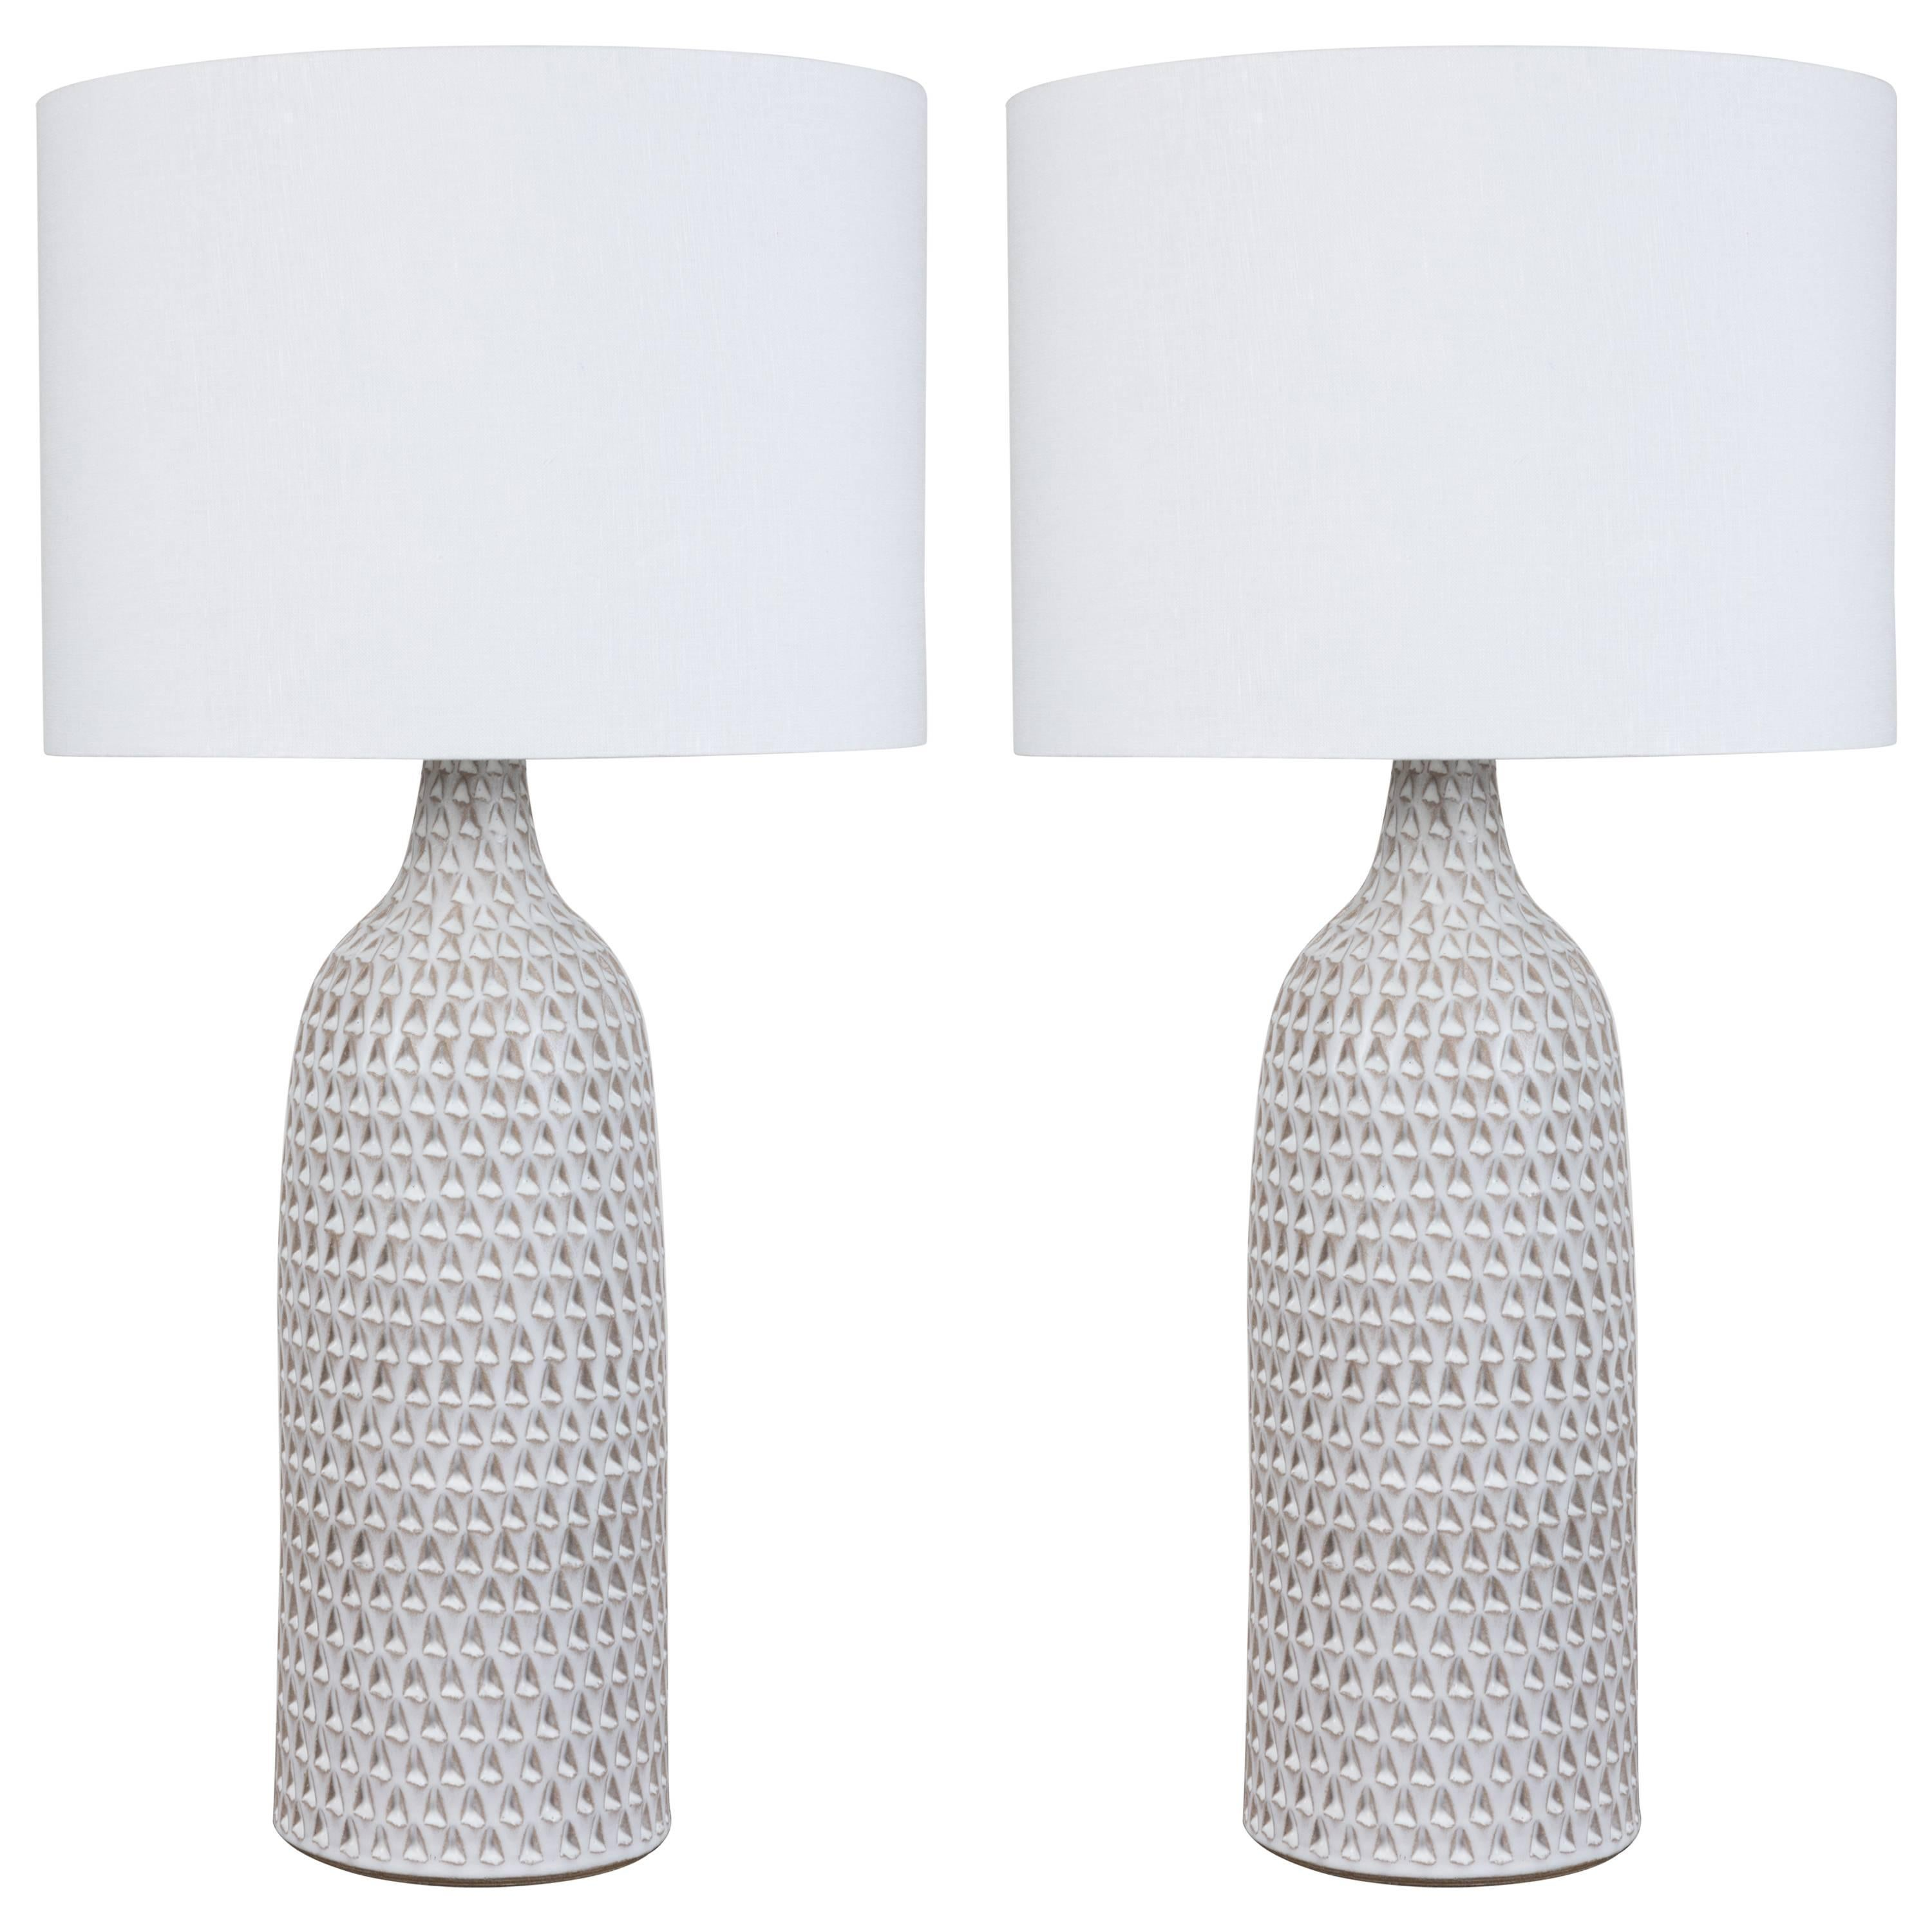 Pair of XXL White Carved Bottle Lamps by Victoria Morris for Lawson-Fenning